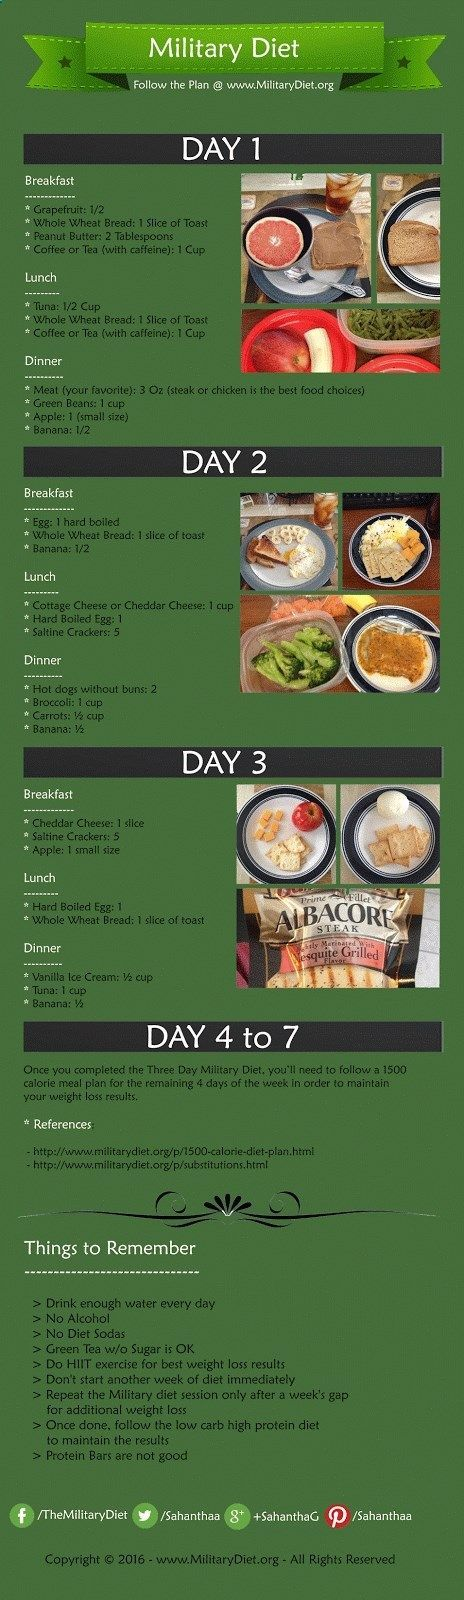 Follow The Military Diet Program to lose upto 10 pounds in three days. Find the complete 3 day military diet plan in this infographic for easy understanding. Save this military diet infographic to your device. #weightlosstips #lose10poundsinweek